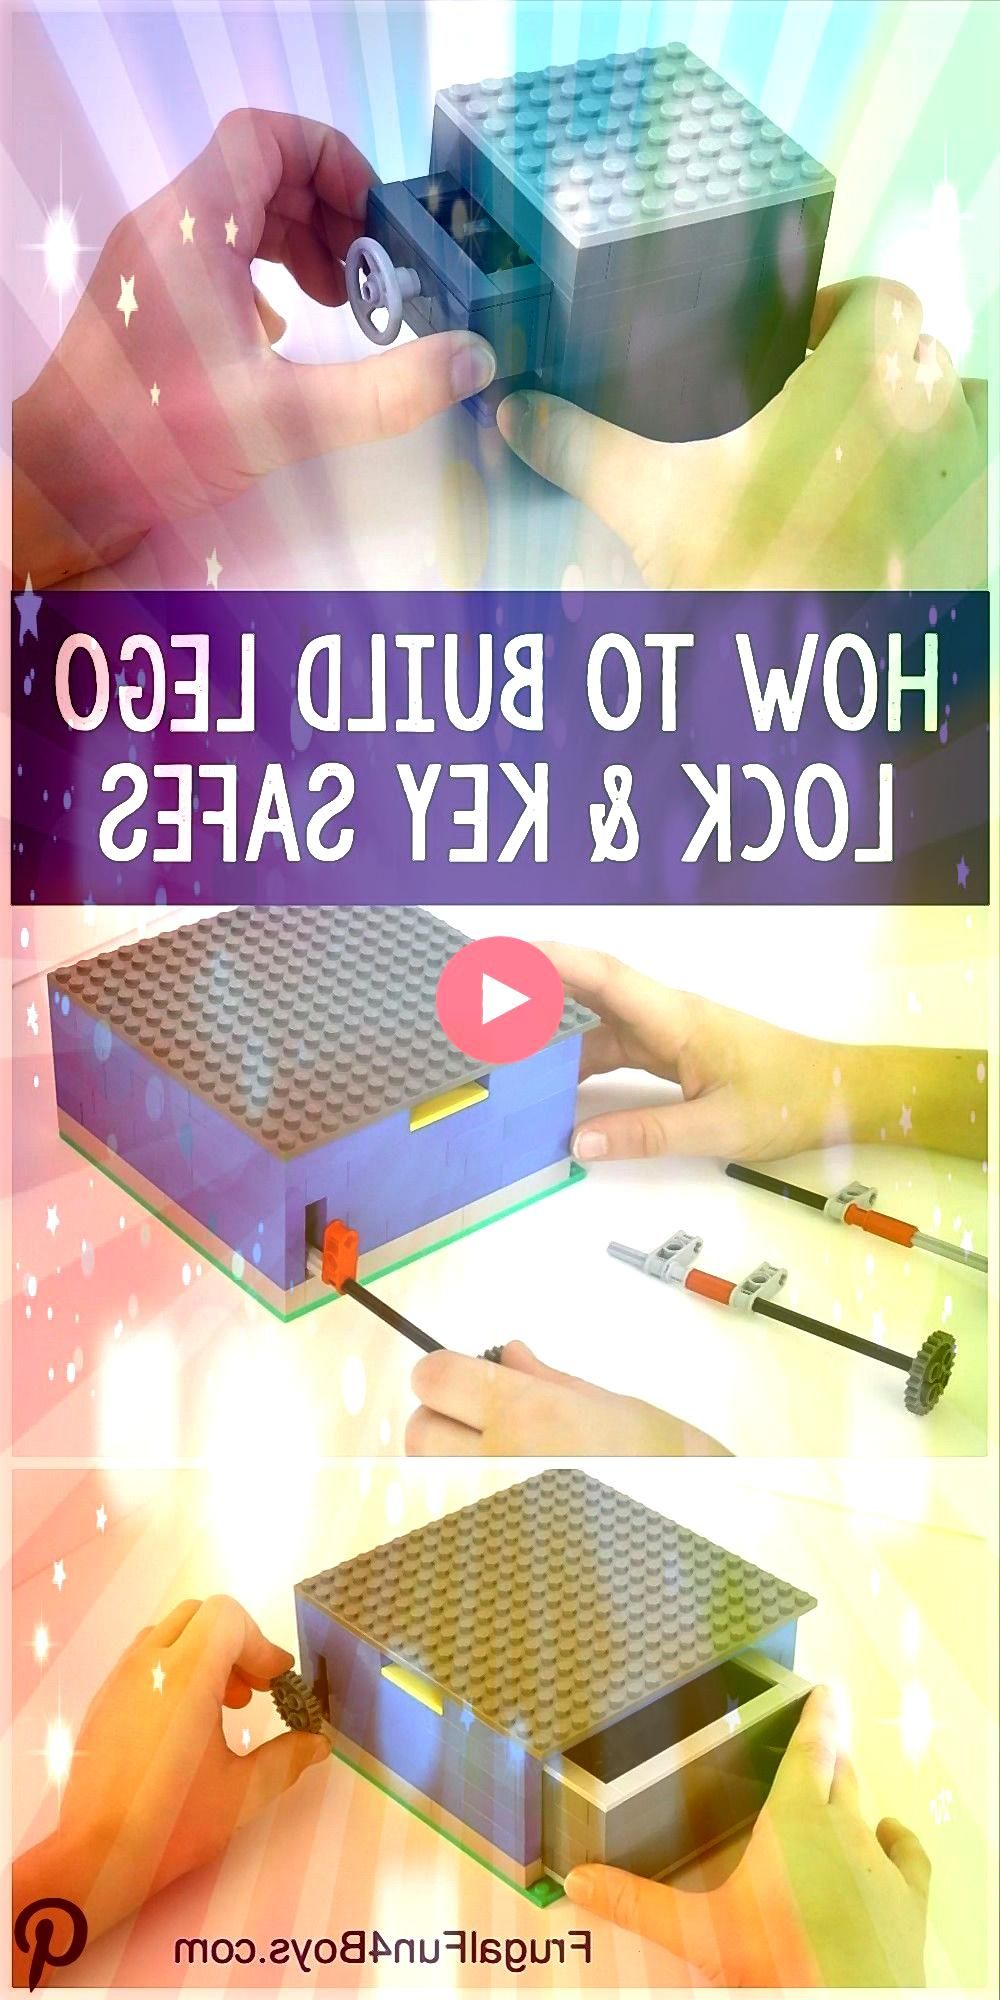 to Build LEGO Safes with Lock  Key How to Build LEGO Safes with Lock  KeyHow to Build LEGO Safes with Lock  Key This LEGO DUPLO Shadow Theatre is a great way to teach you...